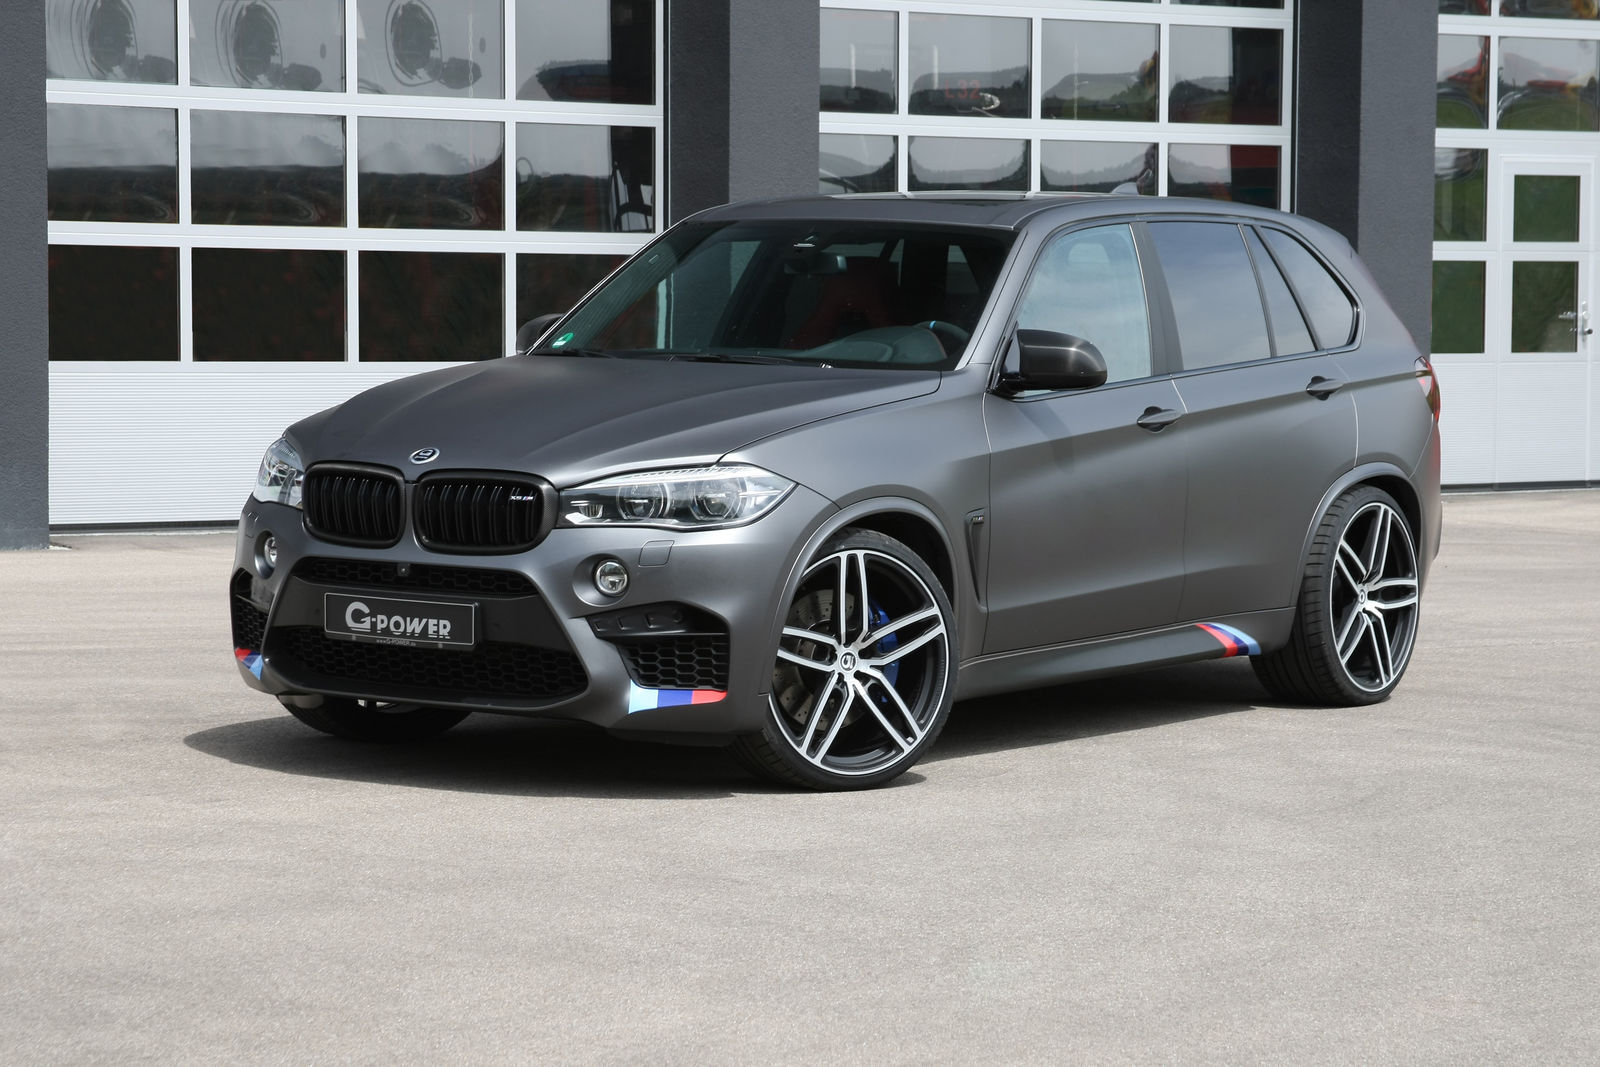 g power unleashes bmw x5 m with 750hp gtspirit. Black Bedroom Furniture Sets. Home Design Ideas